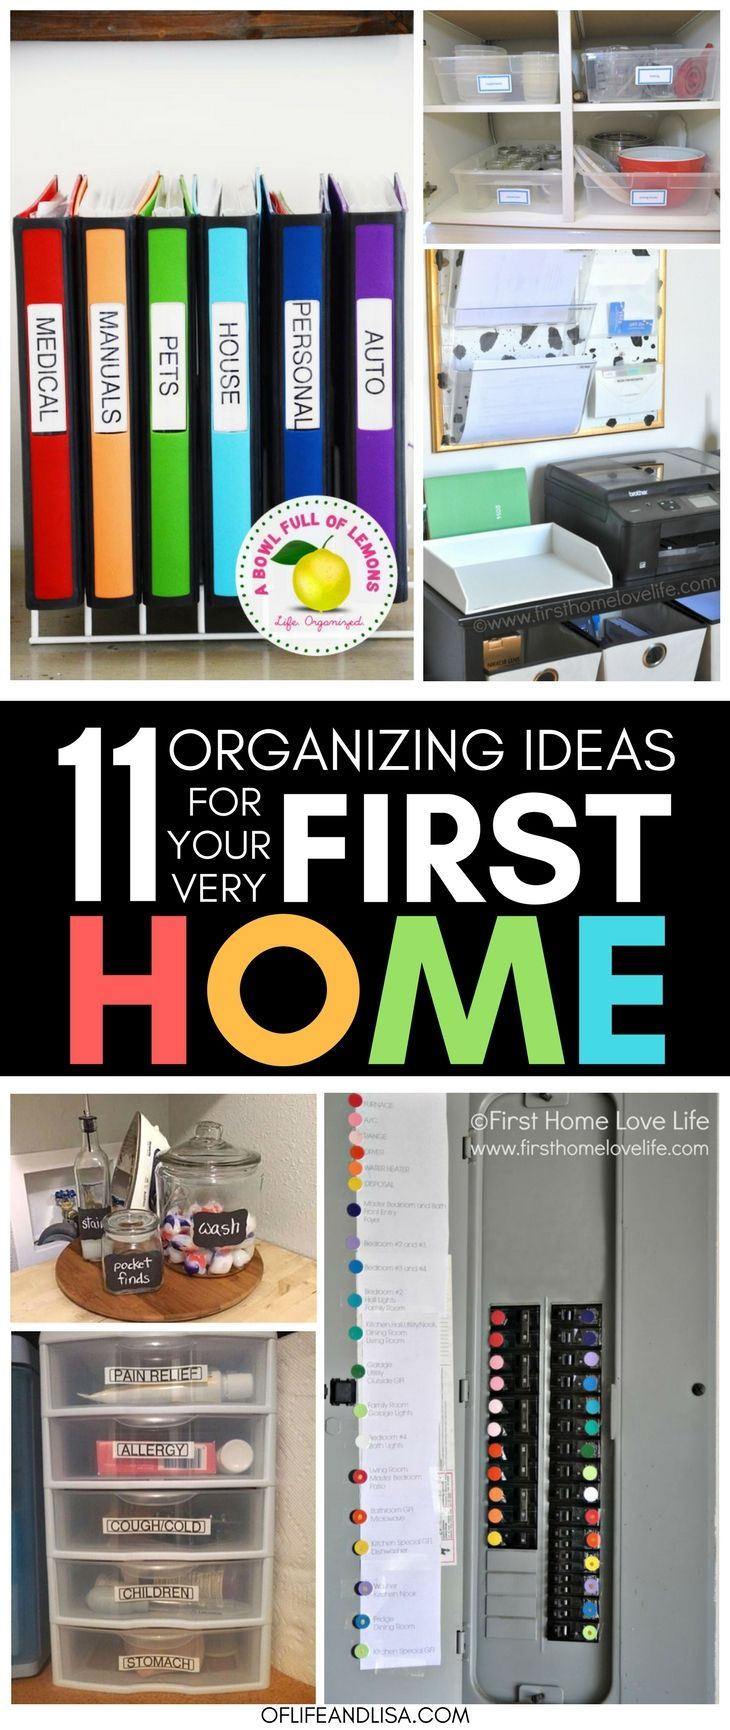 Thinking about buying your first house? Check out these organizing ideas so that when you make the move, you'll know how to keep your new house neat and tidy! #firsthouse #home #firsthome #organizingideas #spring #summer